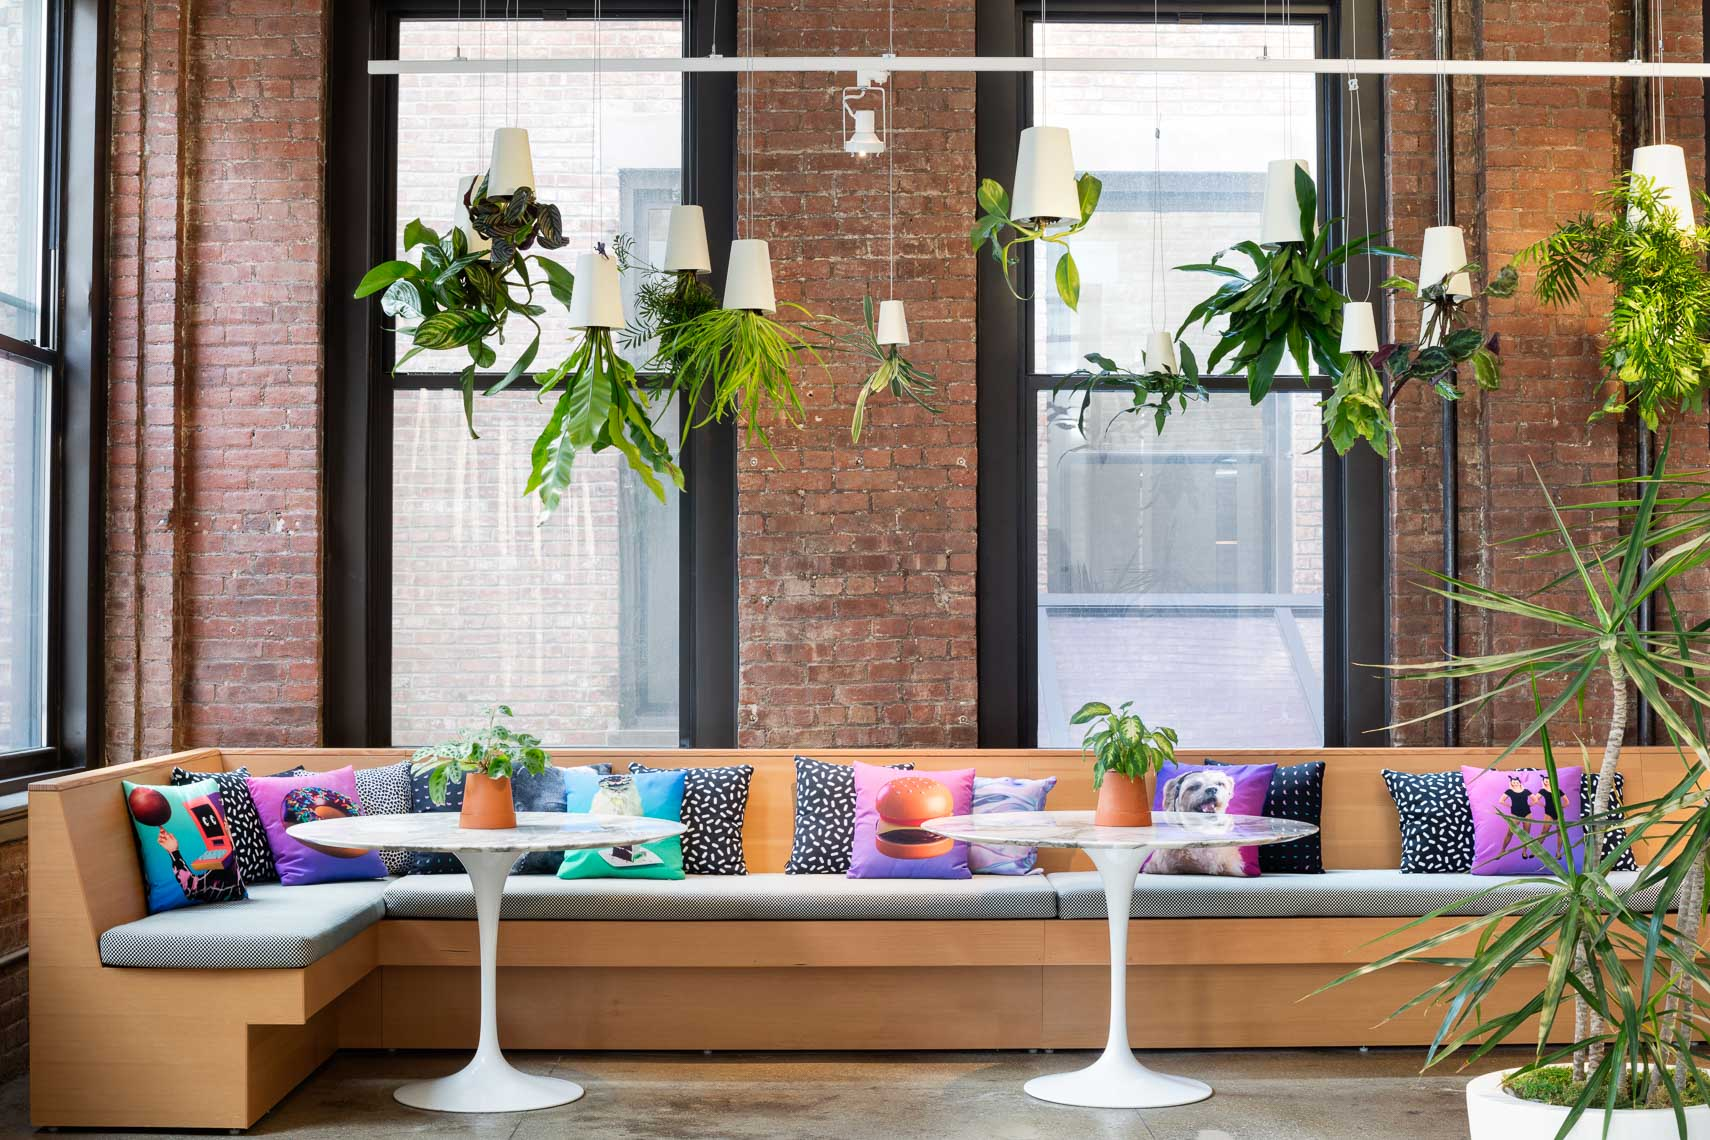 Trendy colorful bench seating with hanging upside down planters